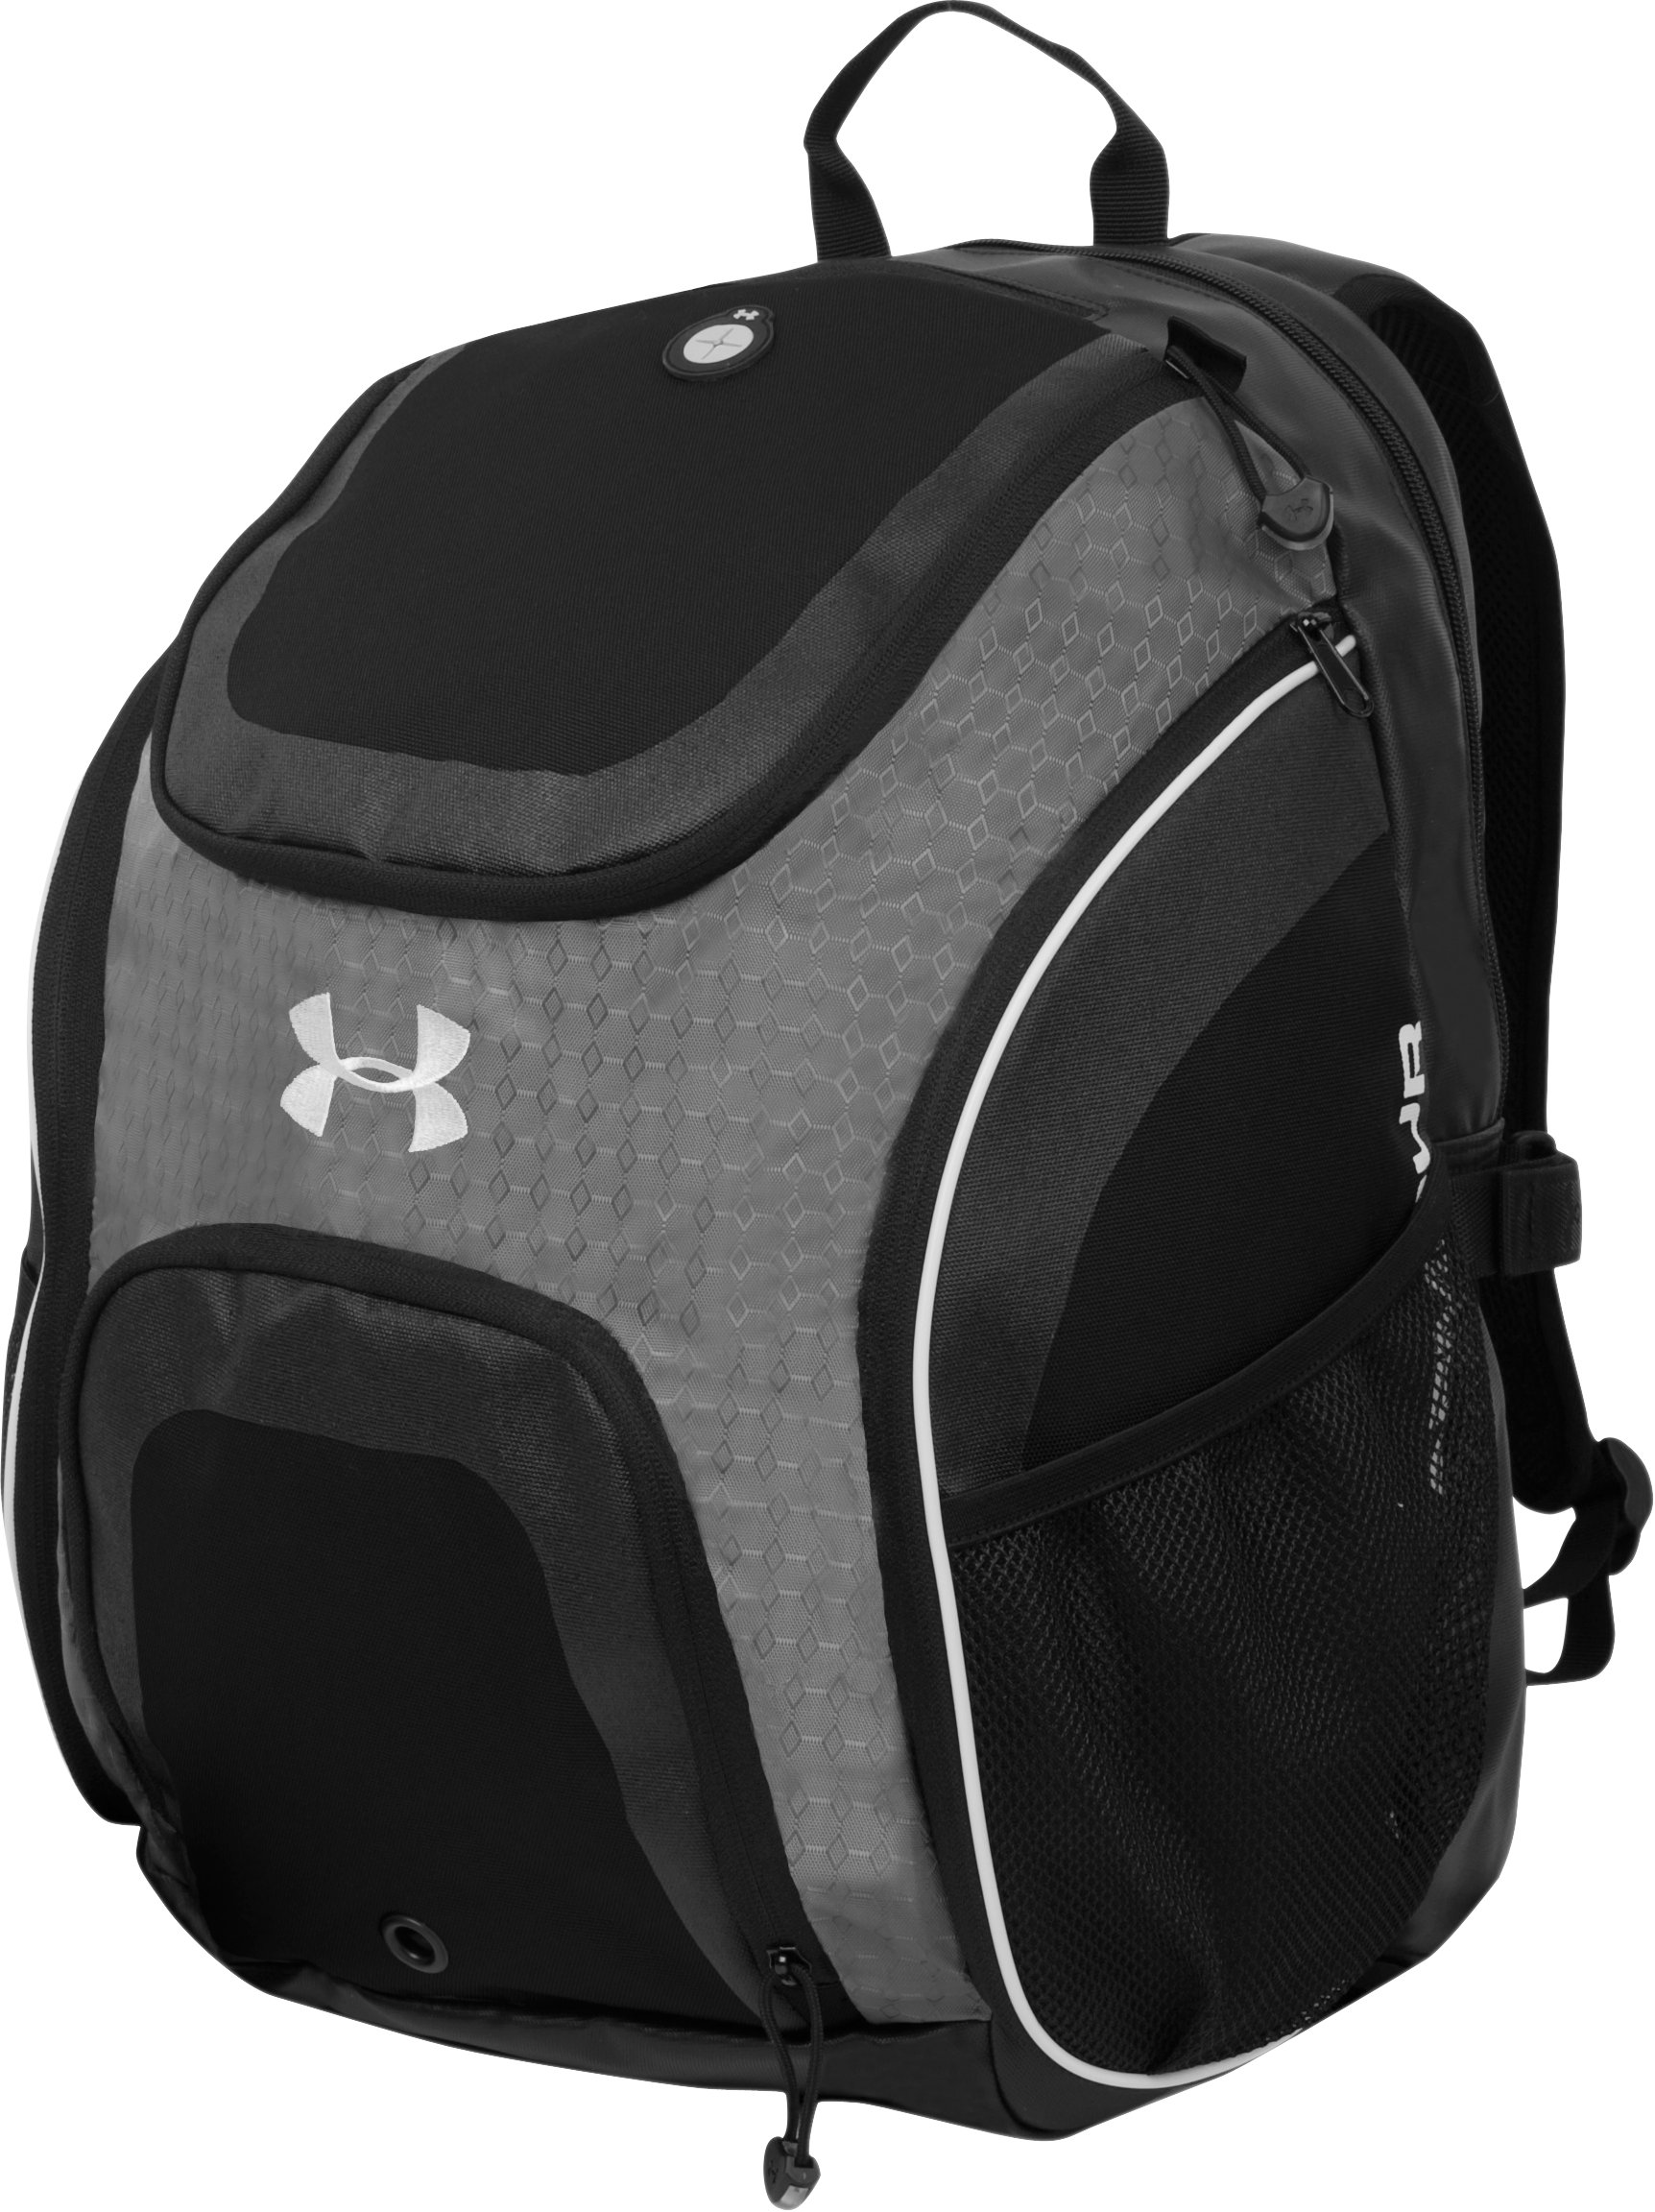 Cage 3 Backpack, Black , zoomed image